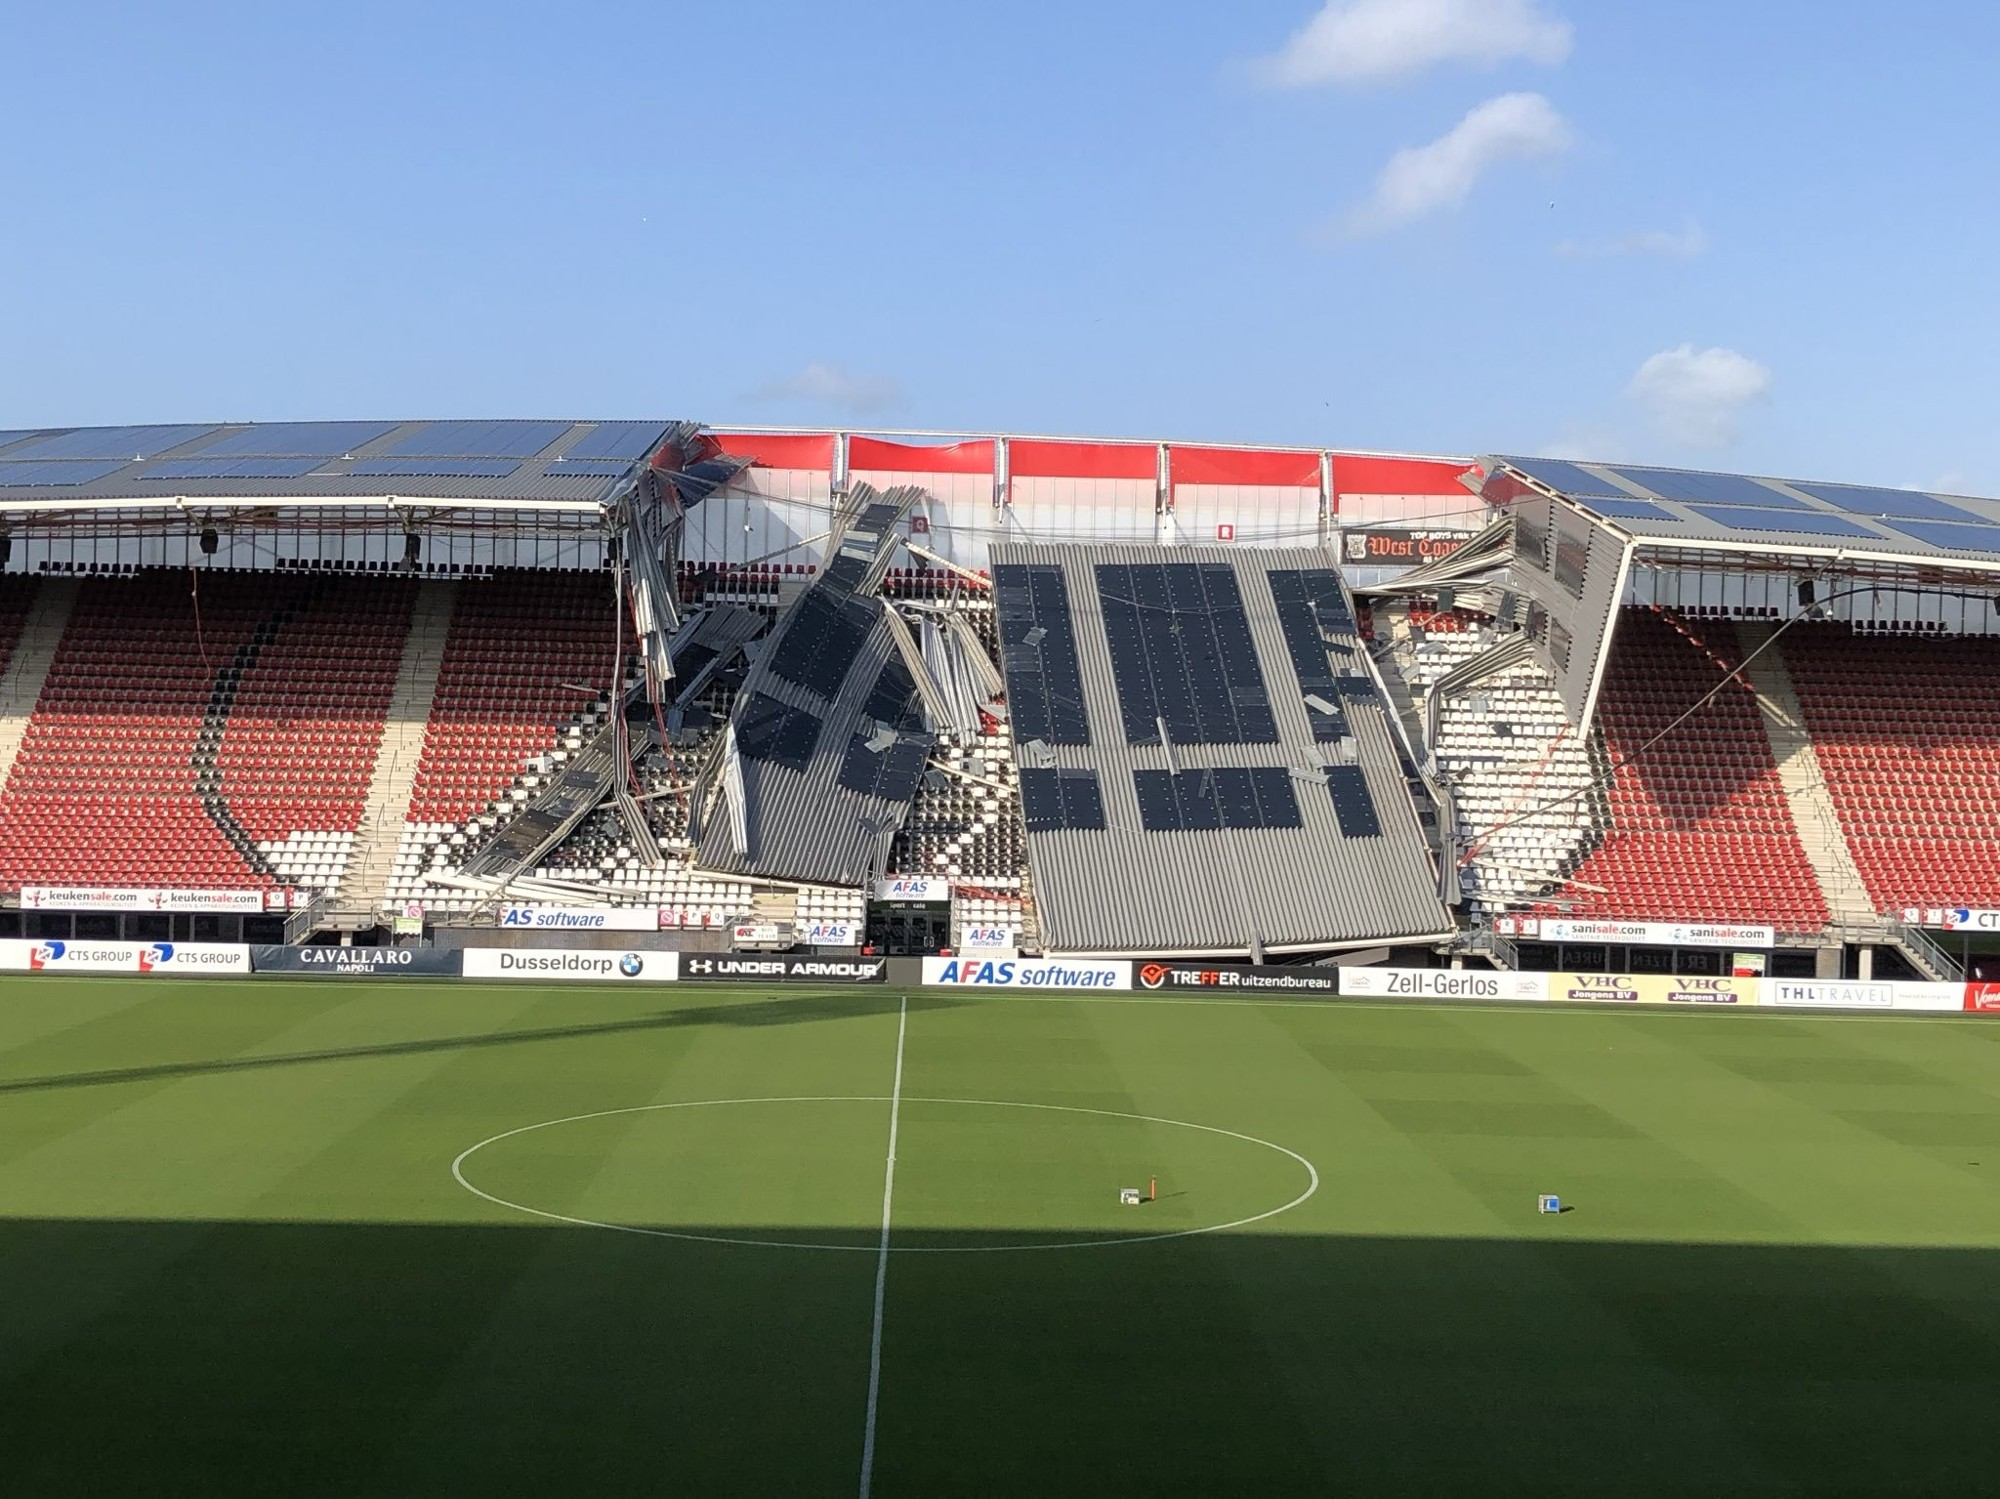 AFAS Stadium in Alkmaar after the roof collapsed